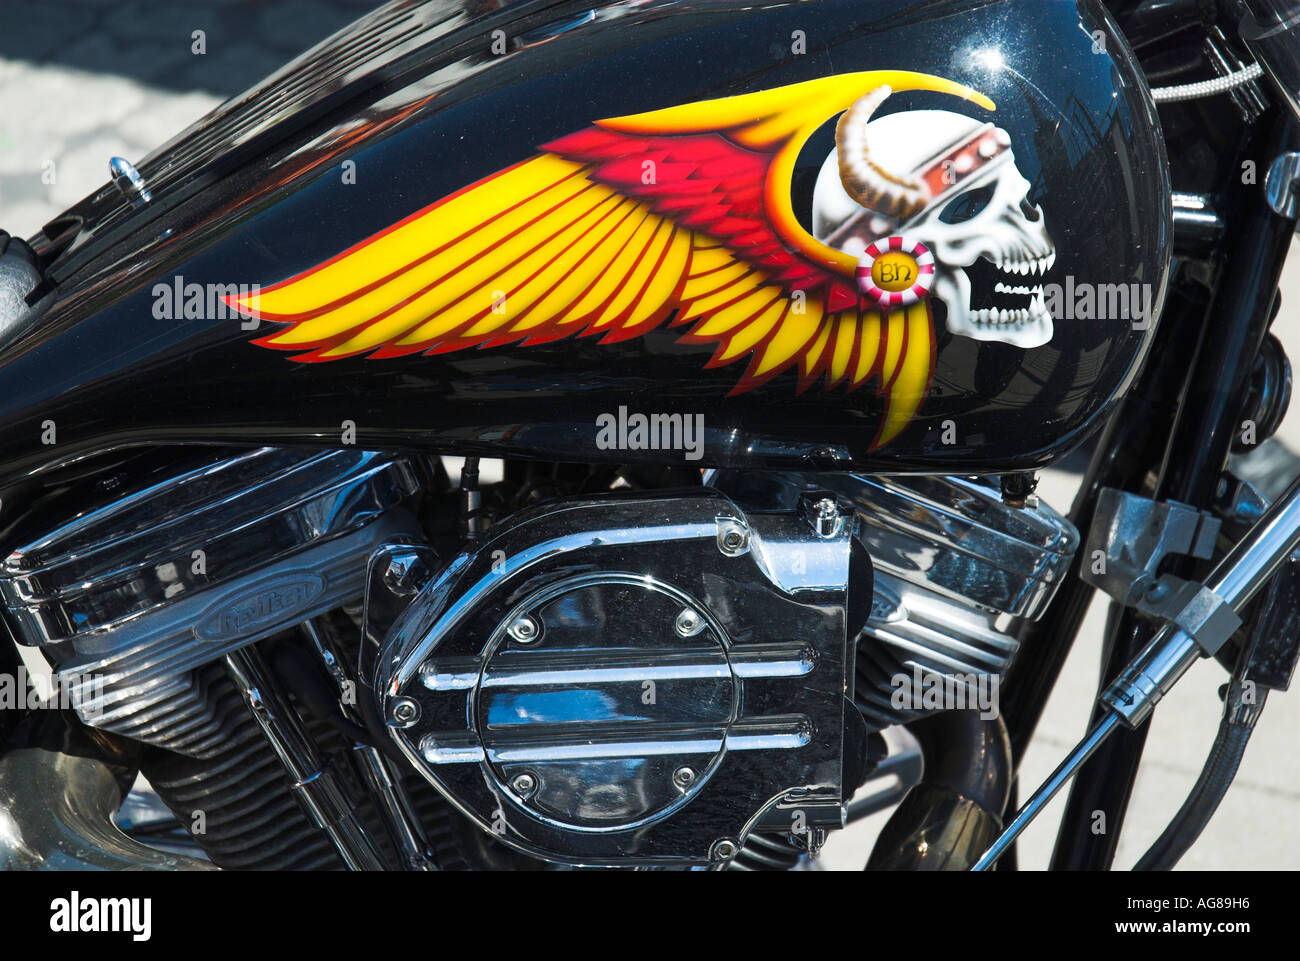 painting of skull on the fuel tank of a harley davidson motorbike stock photo 8072917 alamy. Black Bedroom Furniture Sets. Home Design Ideas